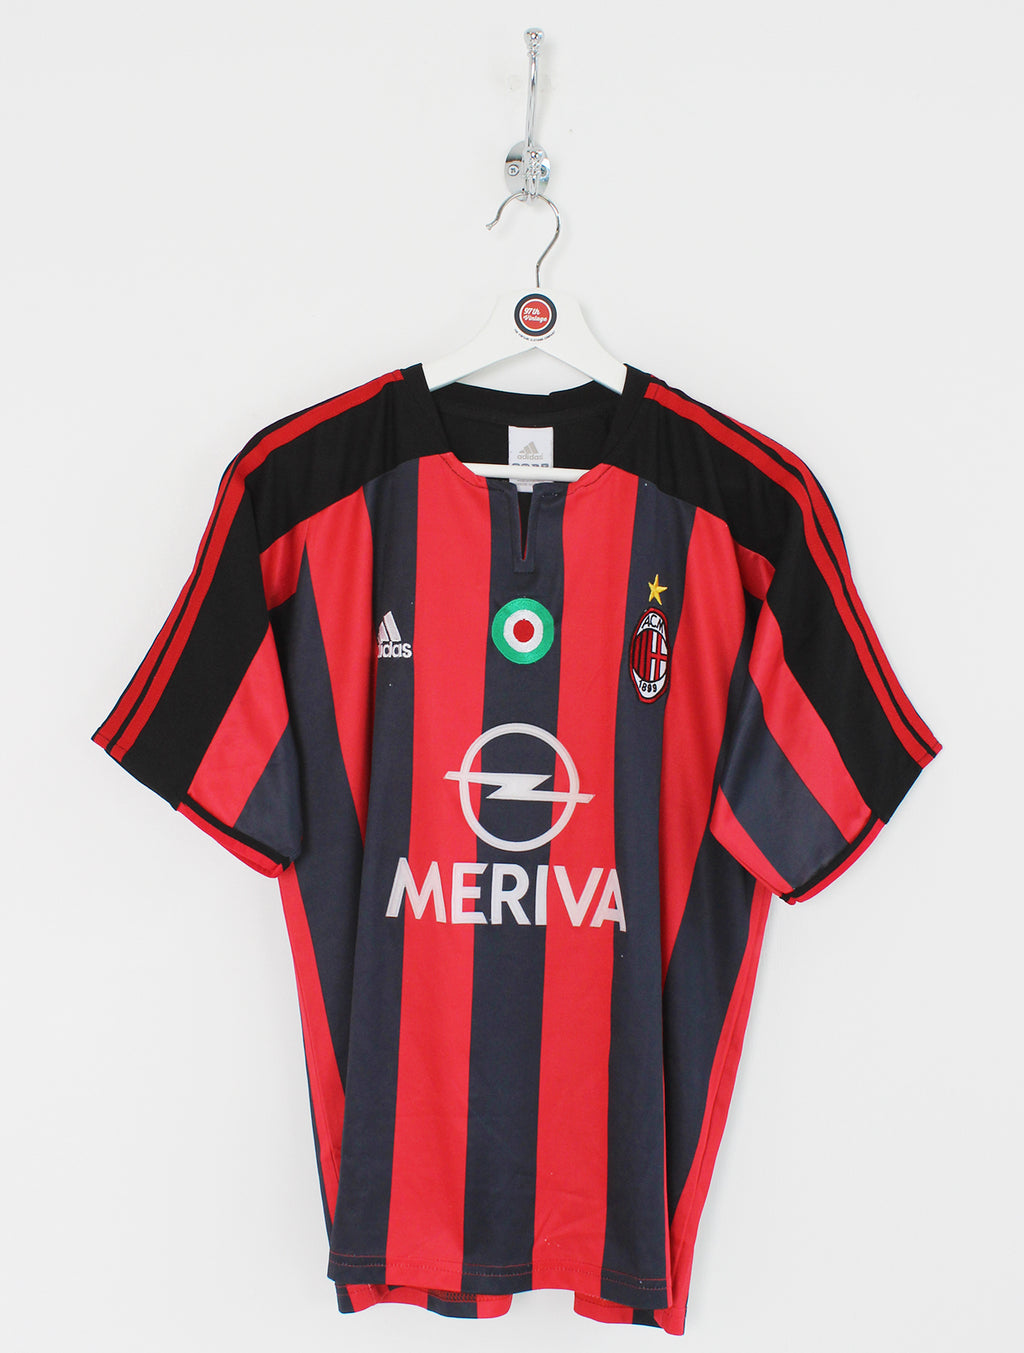 2003/04 AC Milan Football Shirt (M)